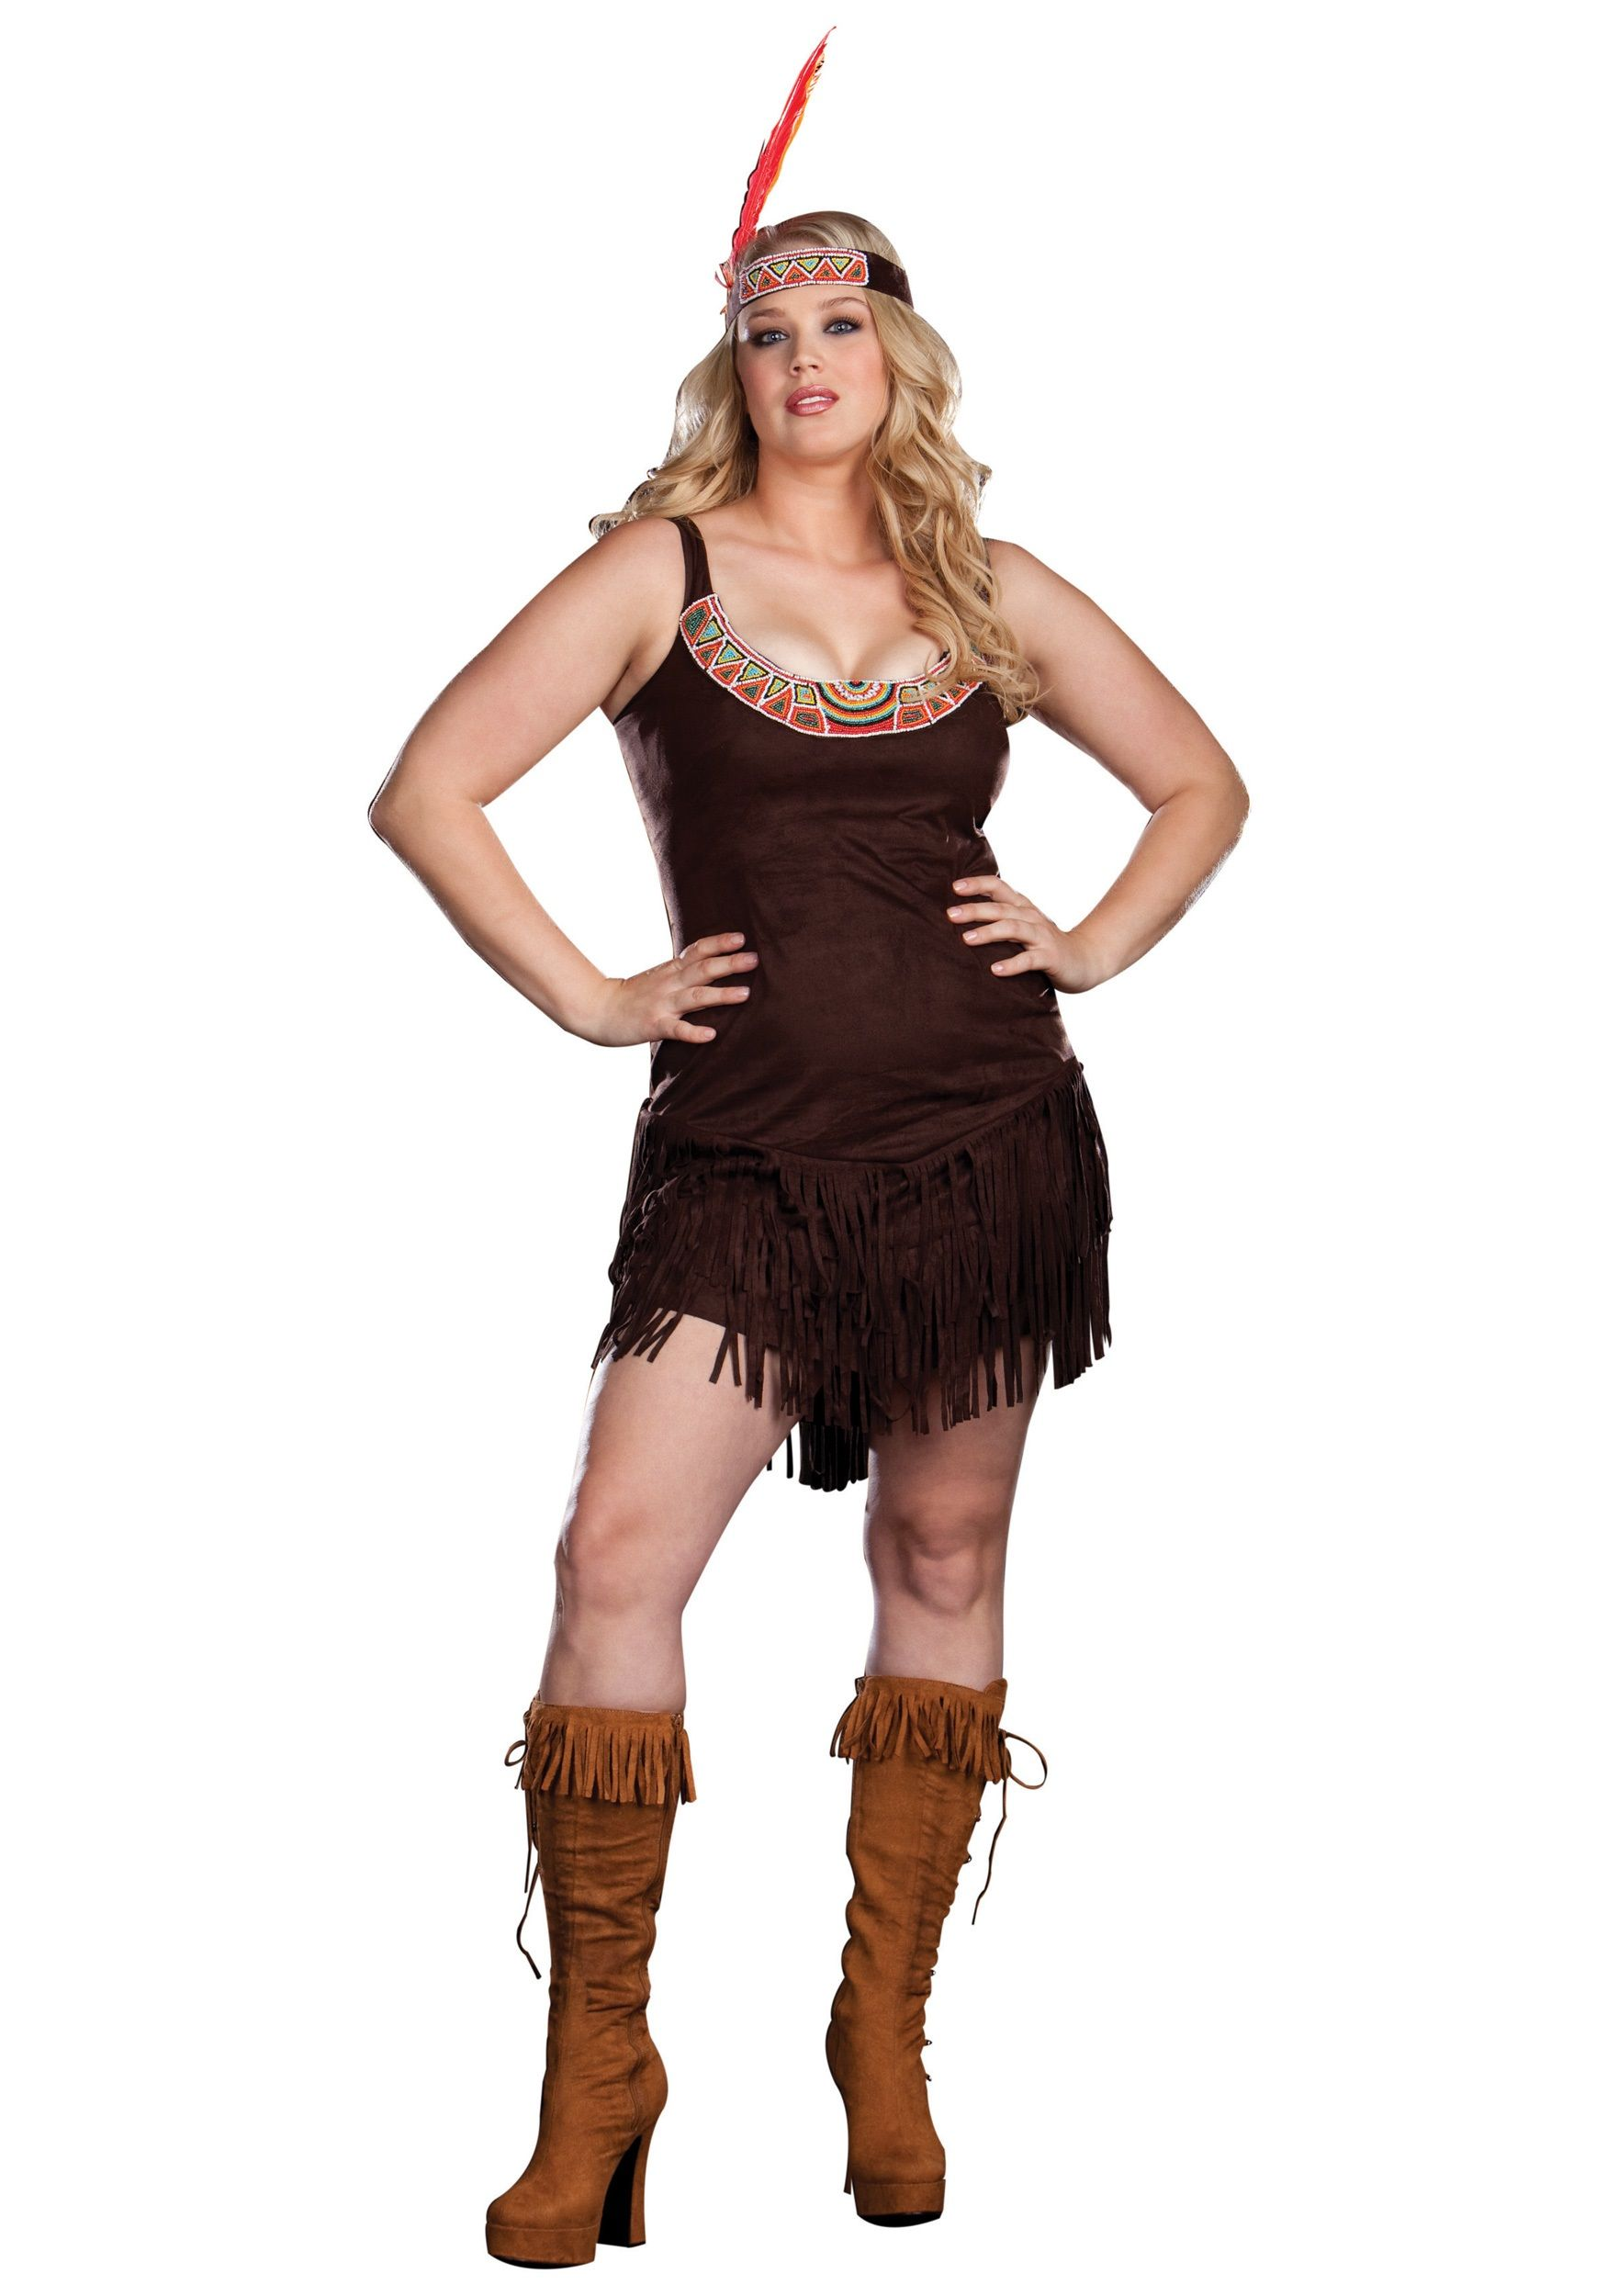 plus sexy pocahontas costume halloween pinterest pocahontas costume costumes and tiger. Black Bedroom Furniture Sets. Home Design Ideas